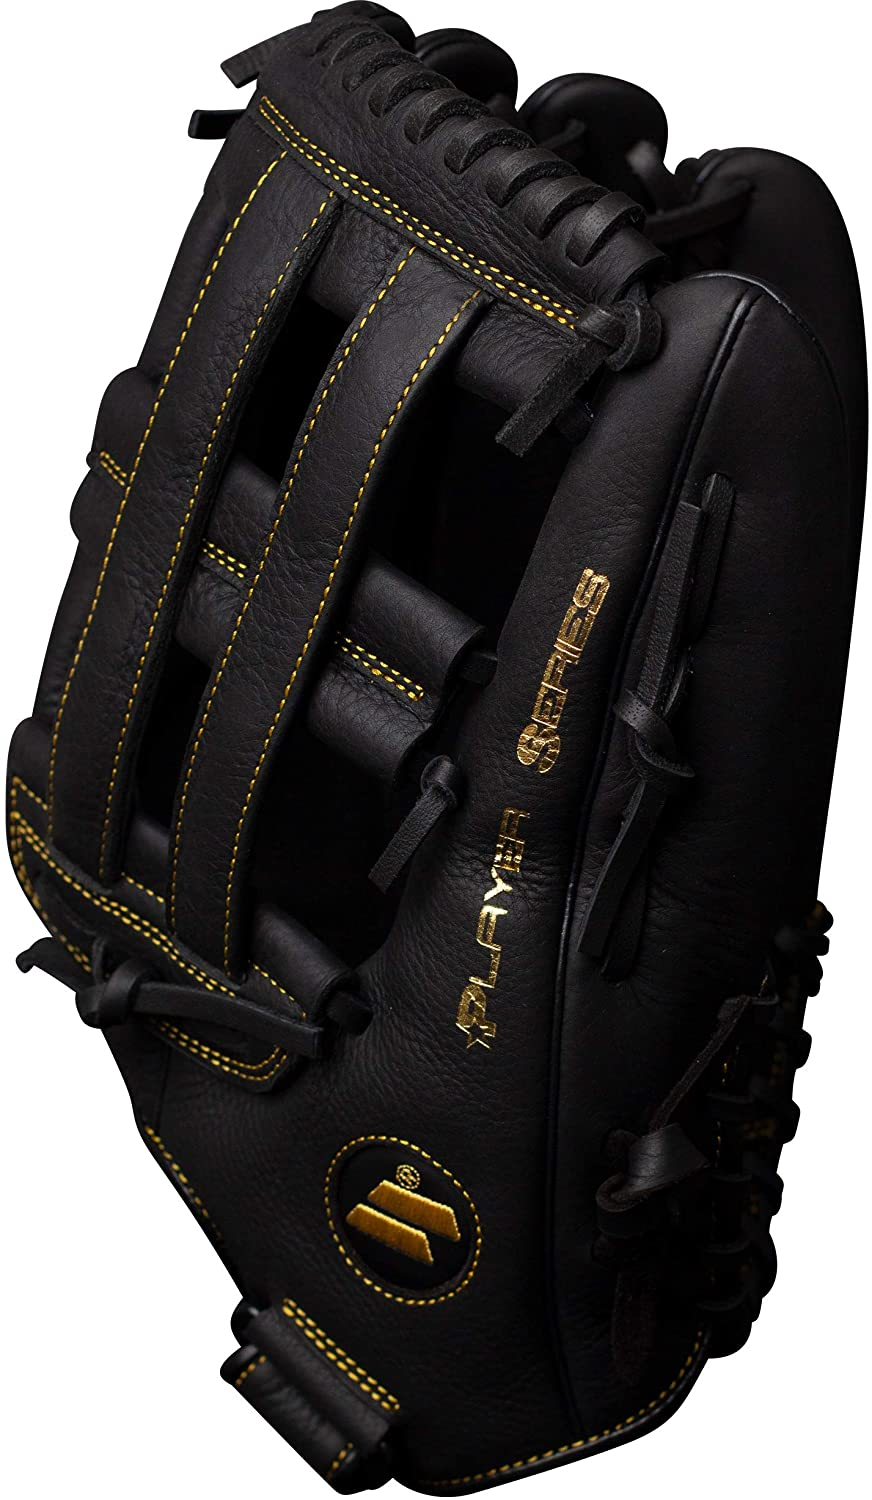 worth-player-series-13-inch-h-web-slowpitch-softball-glove-right-hand-throw WPL130-PH-RightHandThrow Worth 658925043222 Player series from Worth is a Slow Pitch softball glove featuring